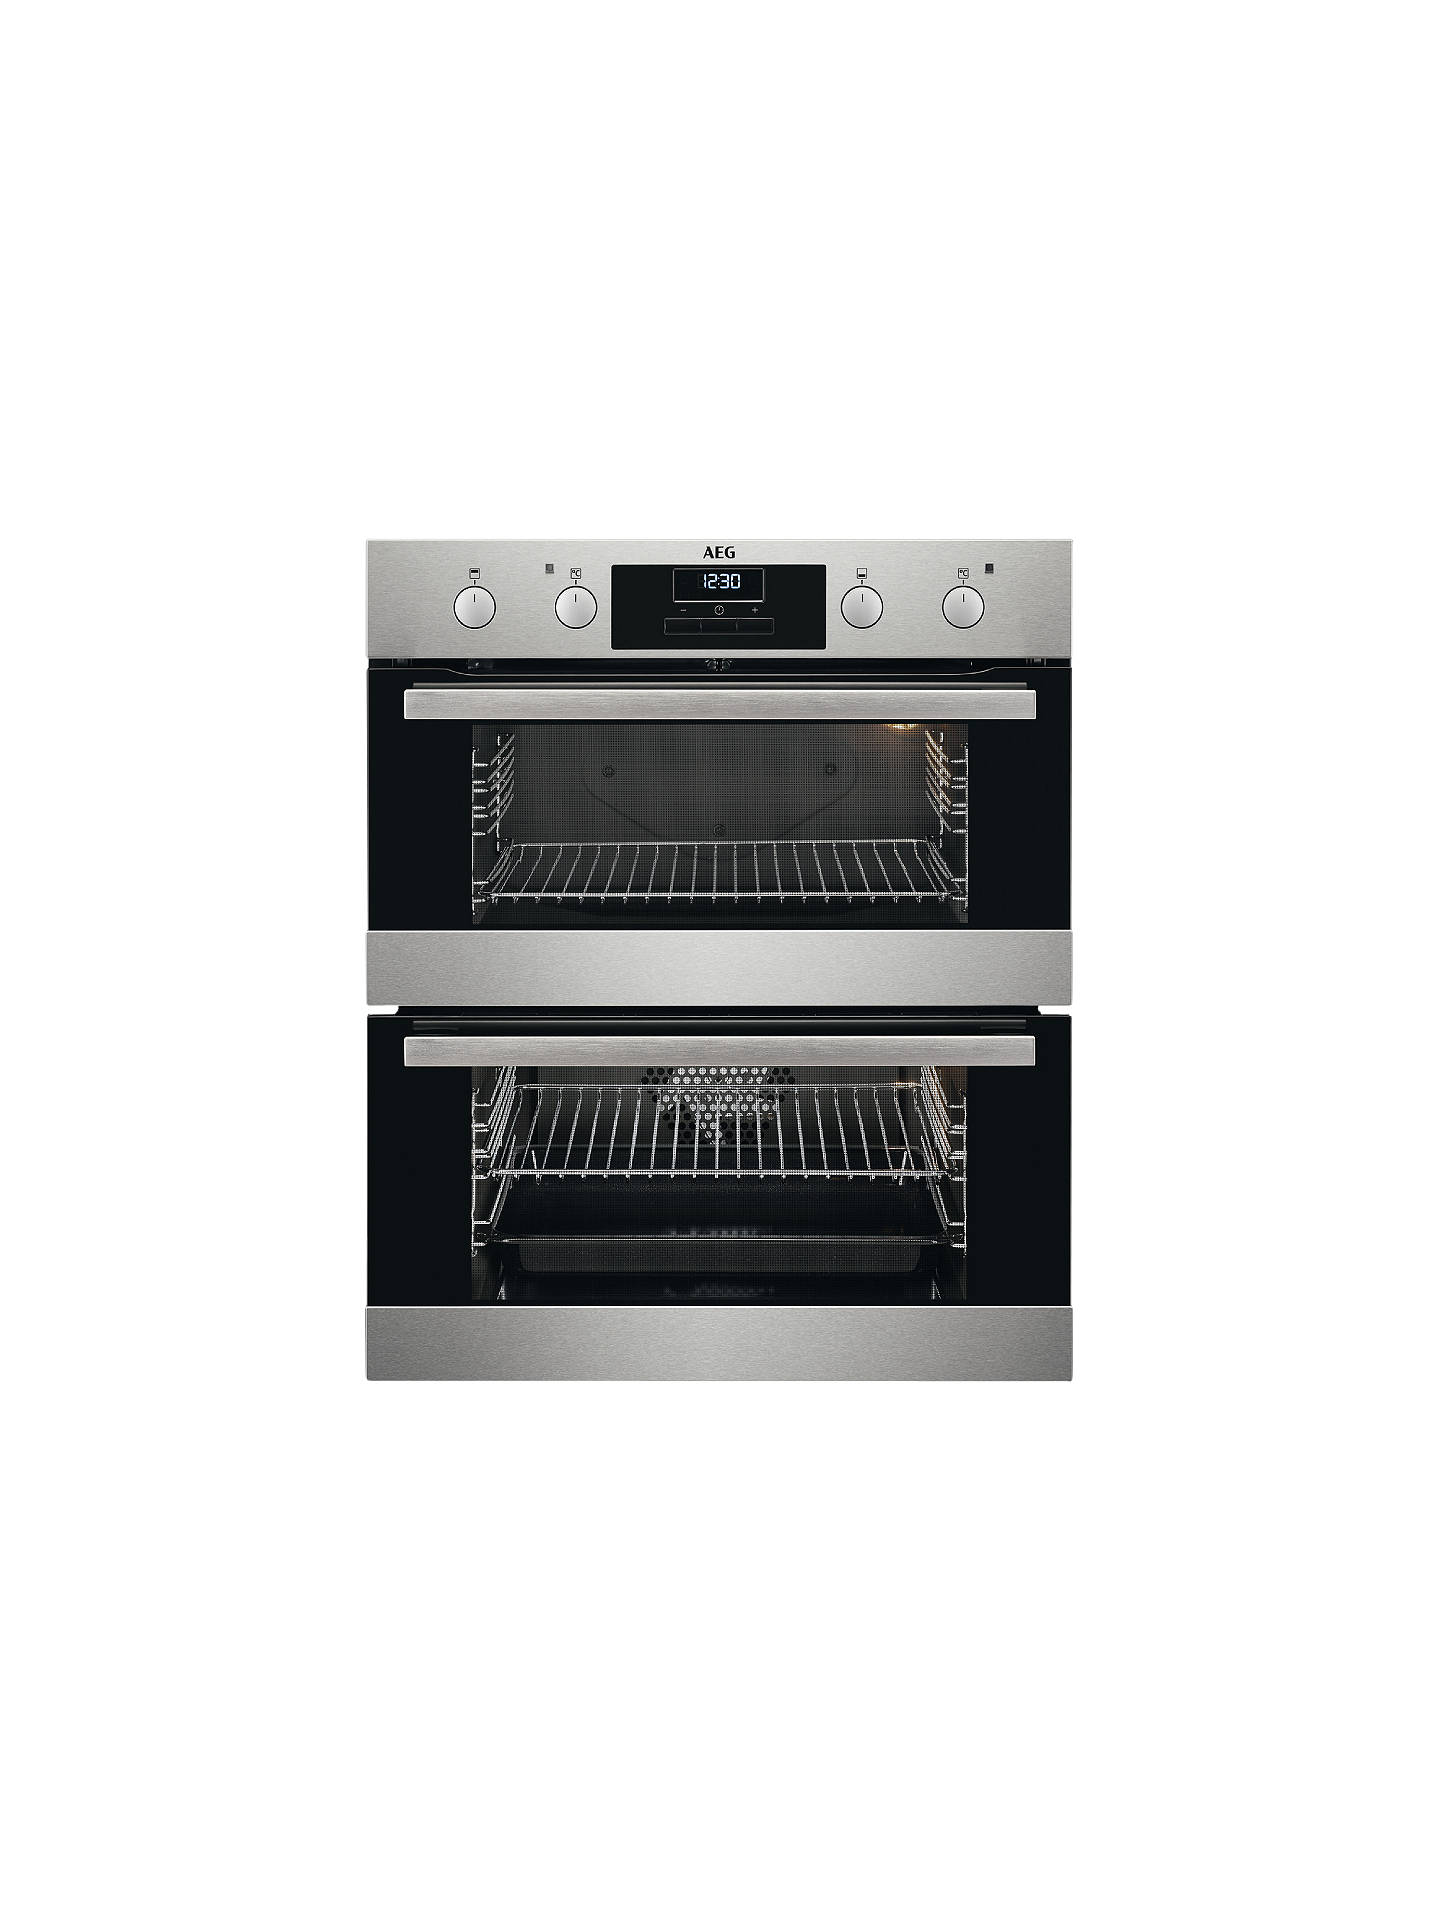 BuyAEG DUB331110M Built-Under Multifunction Double Electric Oven, Stainless Steel Online at johnlewis.com